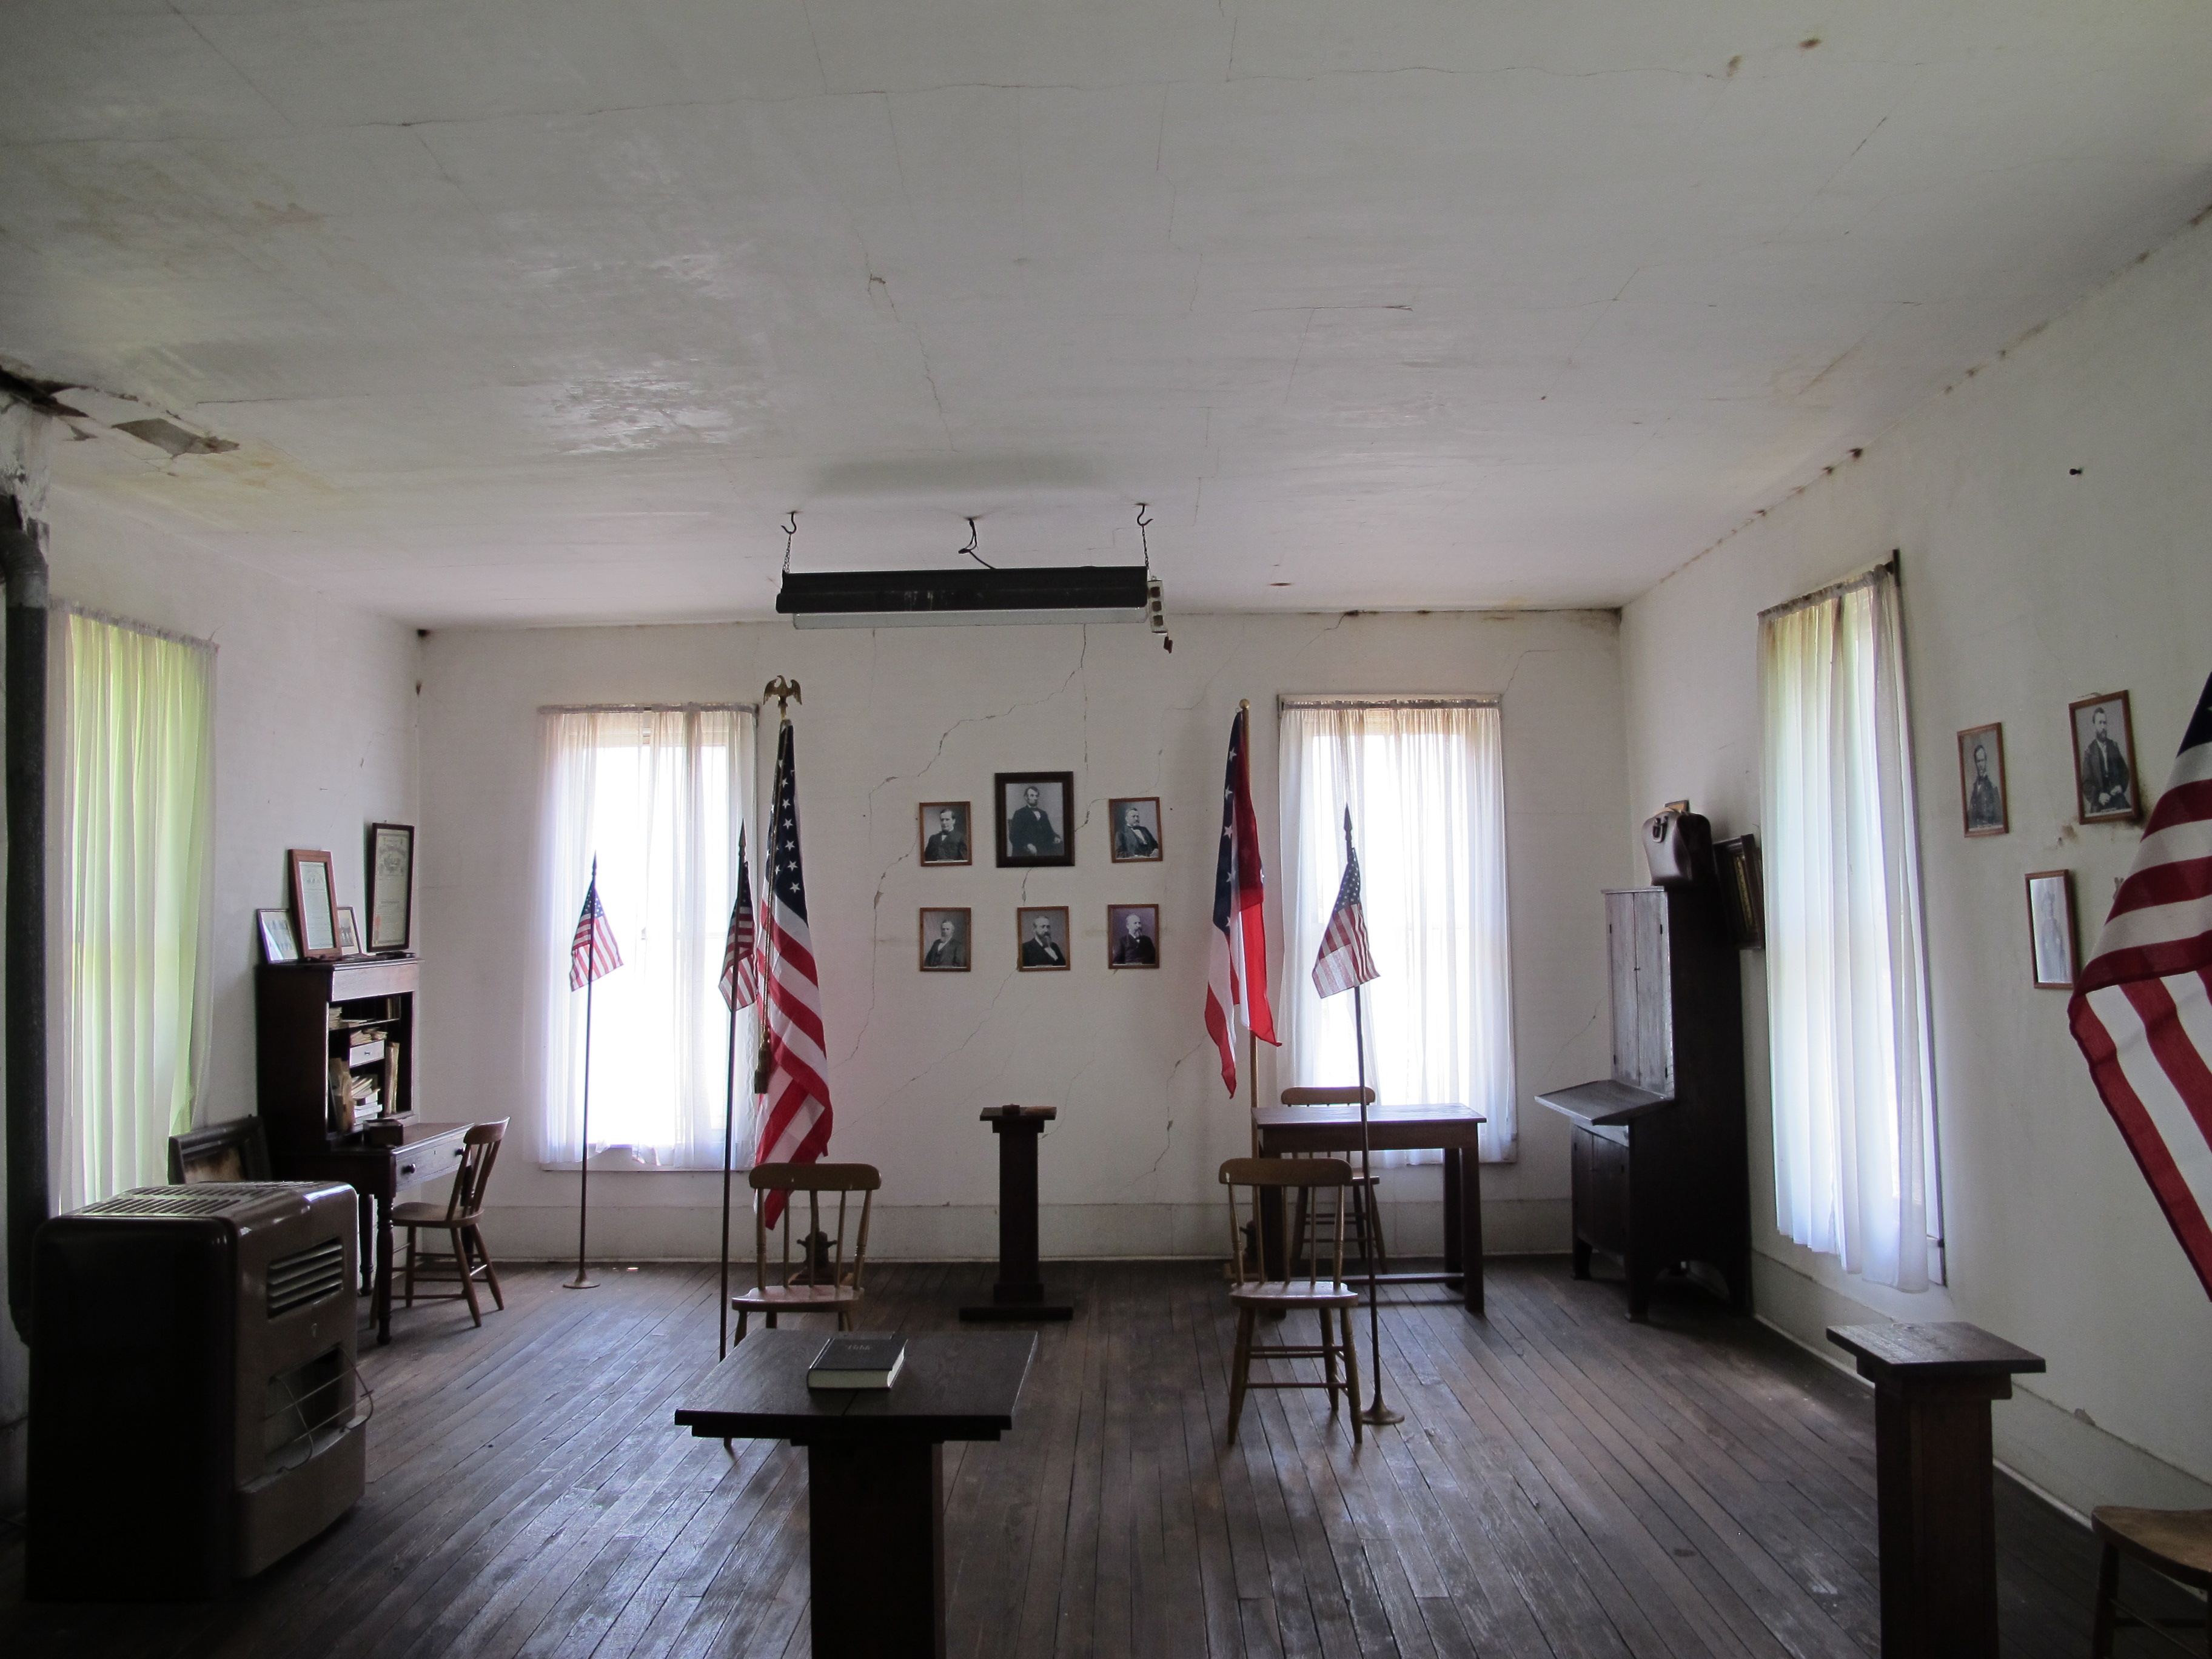 OH_Athens County_Frost GAR Hall_0009